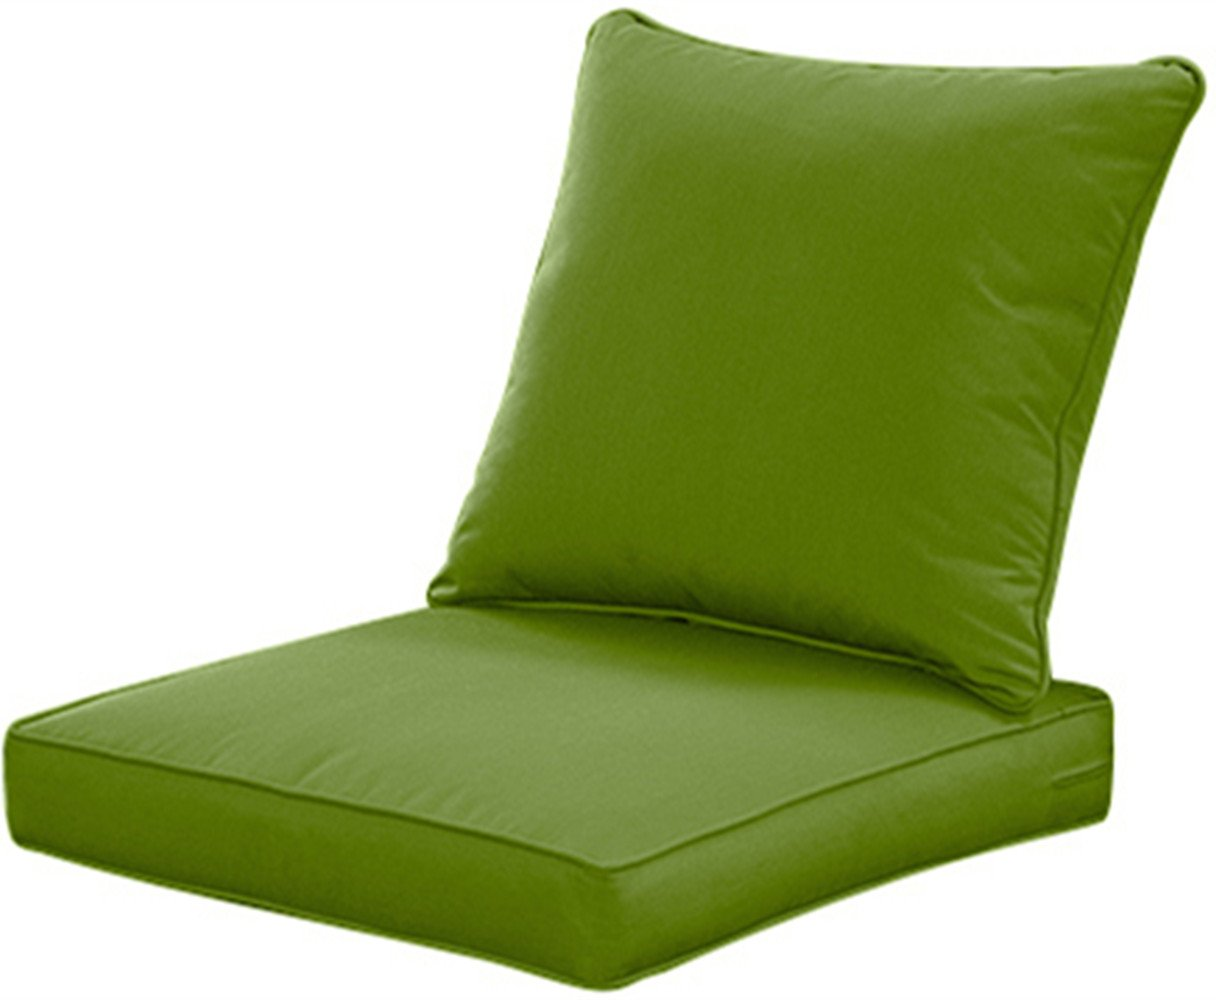 QILLOWAY Outdoor/Indoor Deep Seat Cushions for Patio Furniture, Lawn Chair Cushion 24 x 24 inch 1 Set,Green